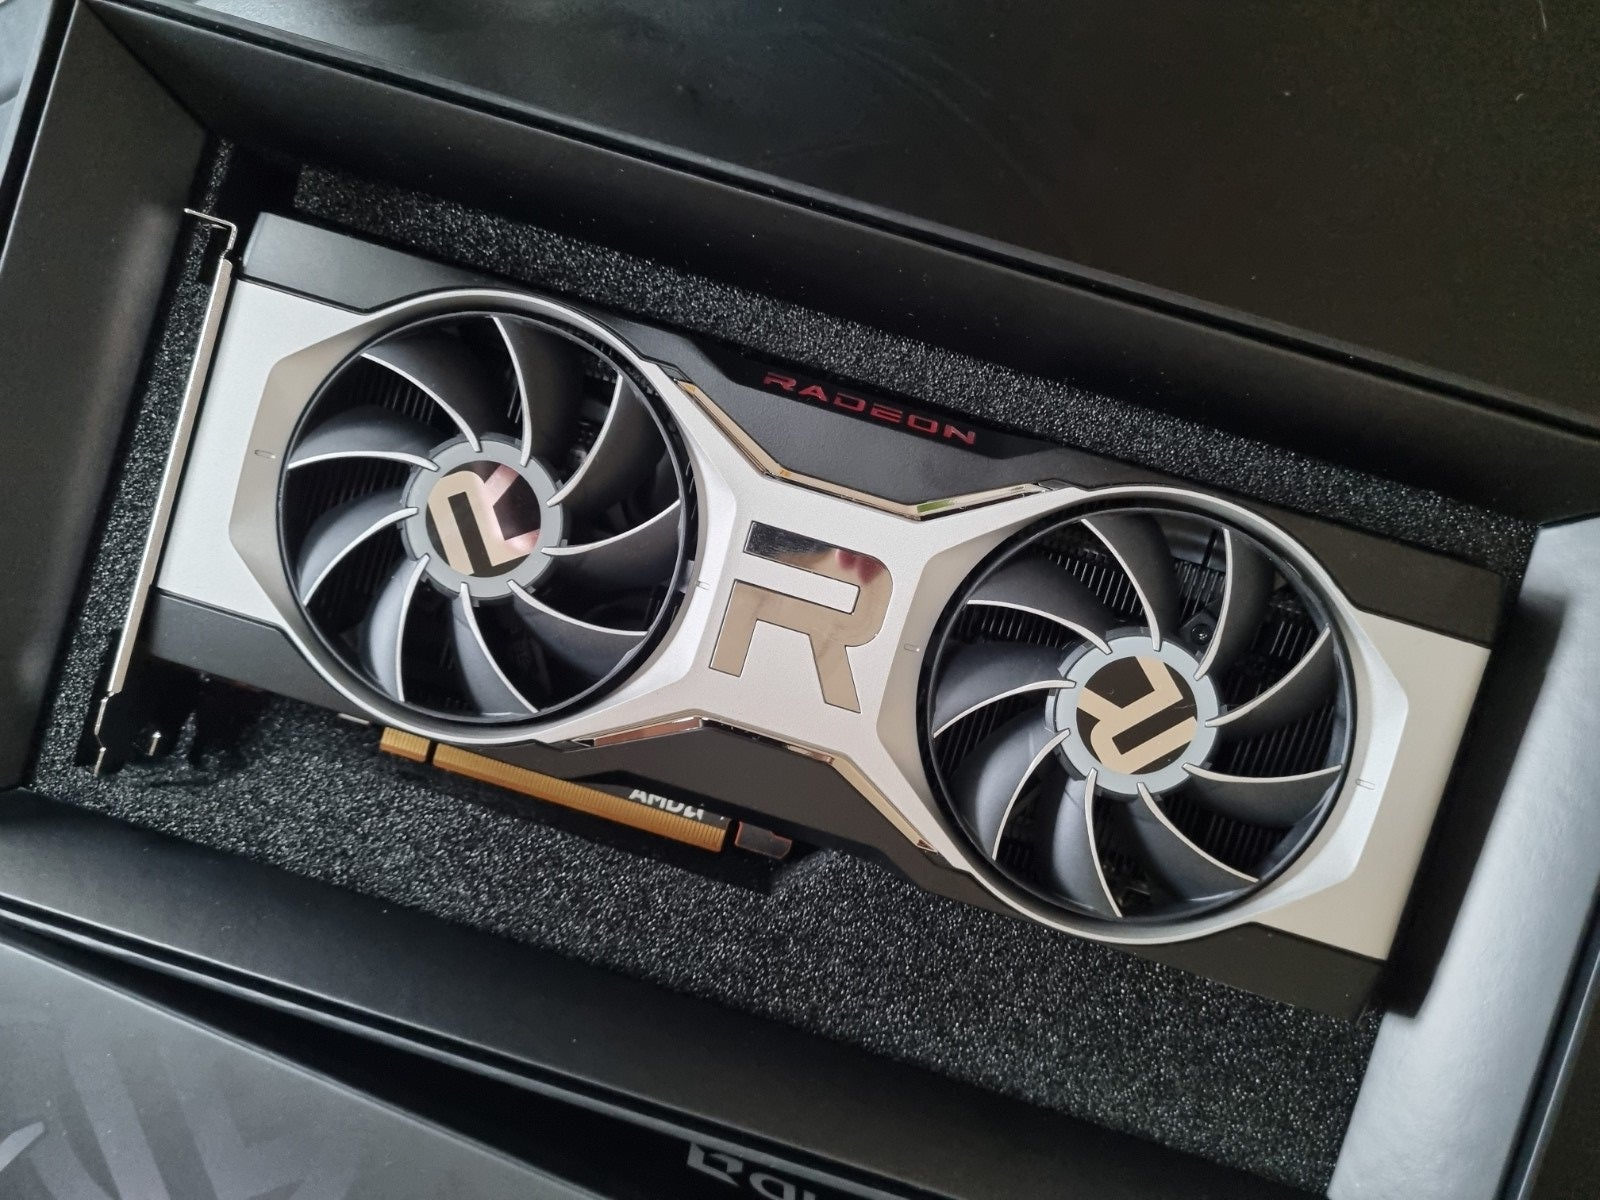 AMD Radeon RX 6700 XT Review | Trusted Reviews